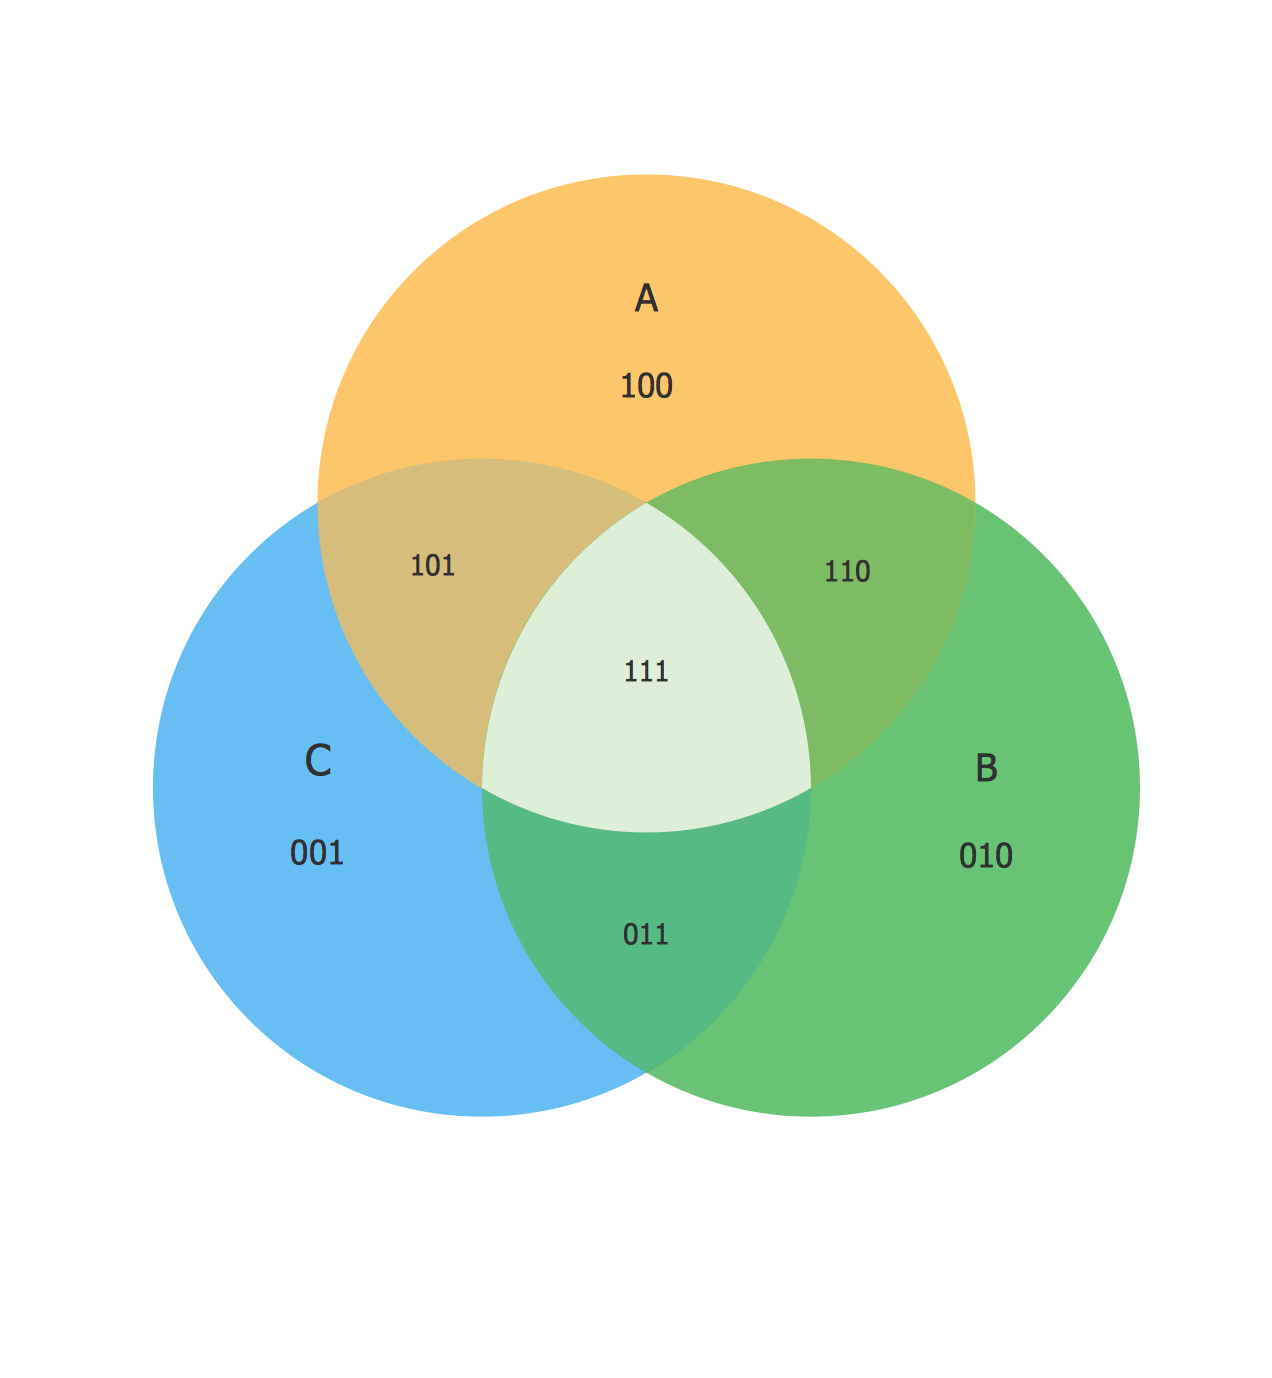 venn diagram examples for logic problem solving venn diagram as a rh conceptdraw com Syllogism Venn Diagram Logic Venn Diagram Generator